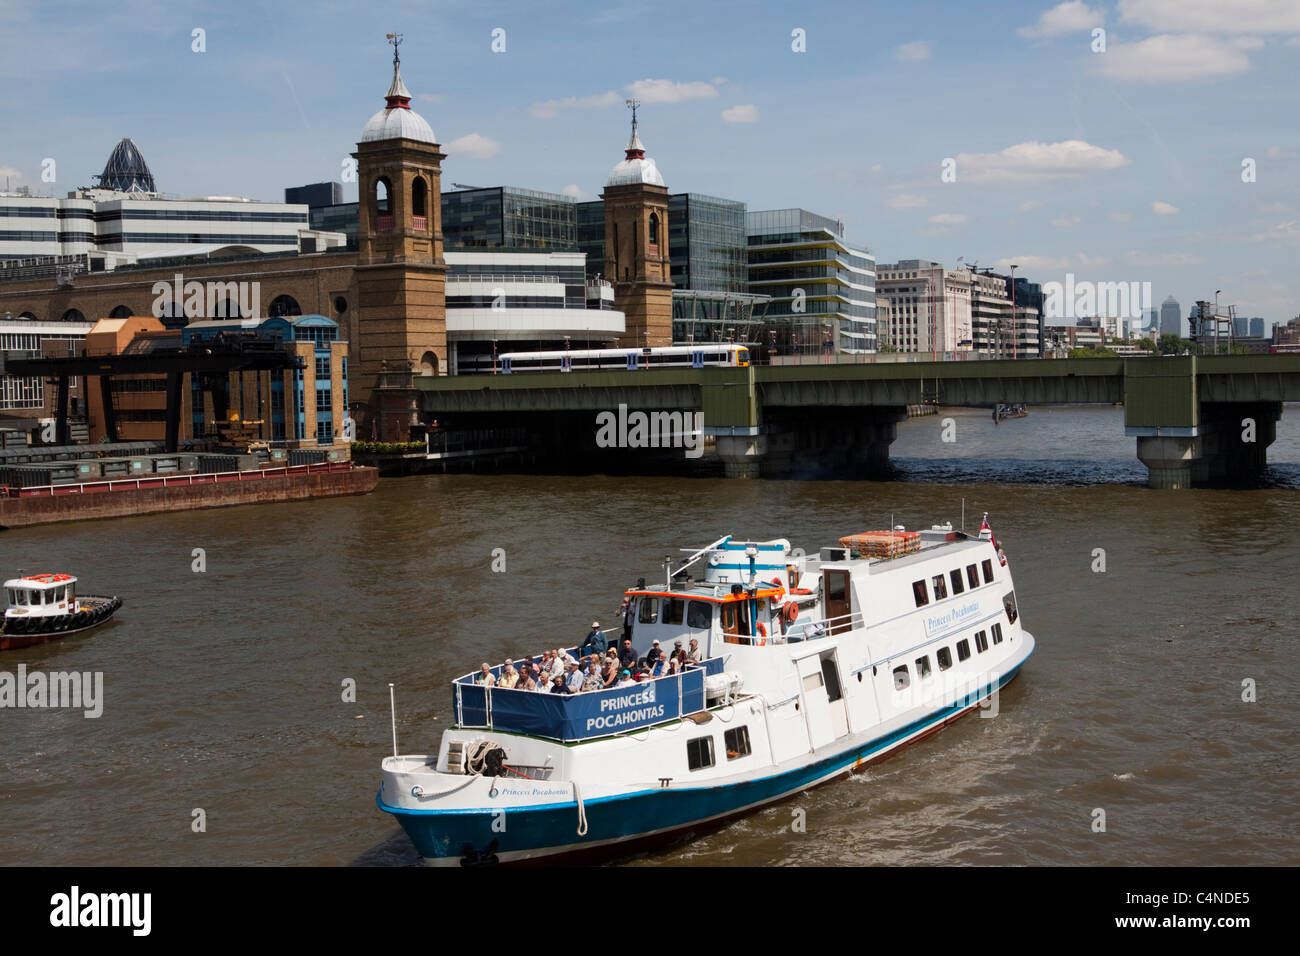 Tourist boat on the River Thames with Cannon street train station in the background, London, England, UK - Stock Image